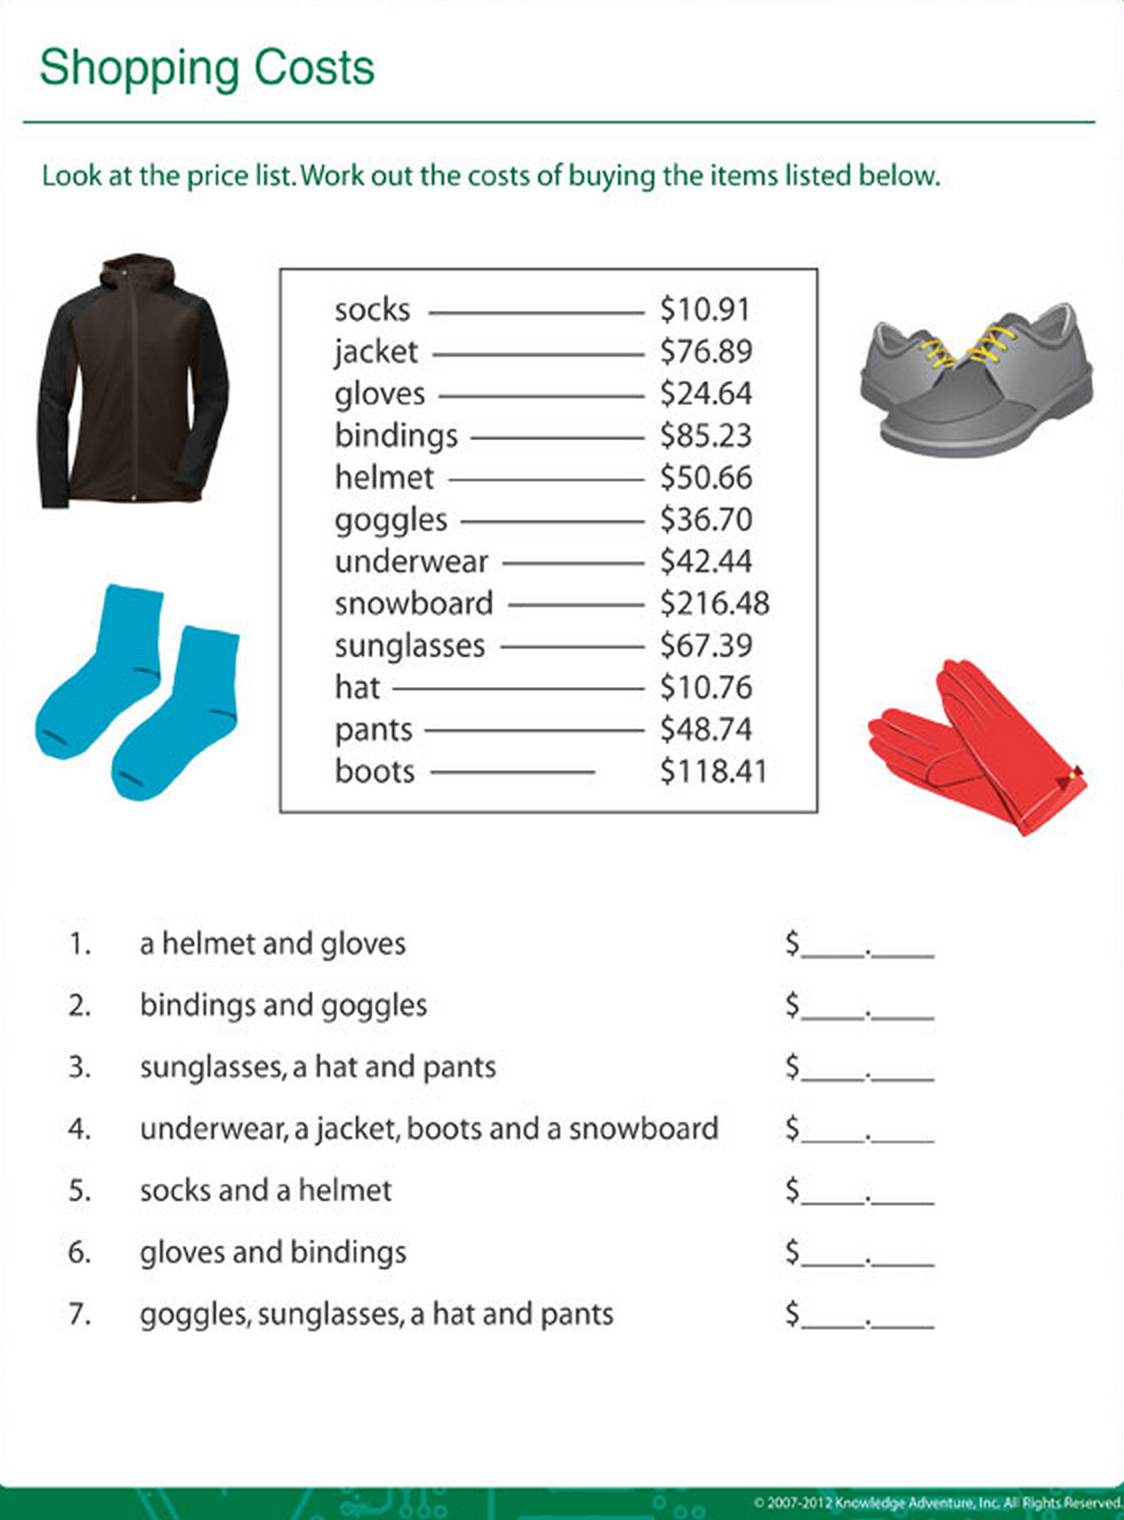 Calculate The Shopping Costs For The Mentioned Items This